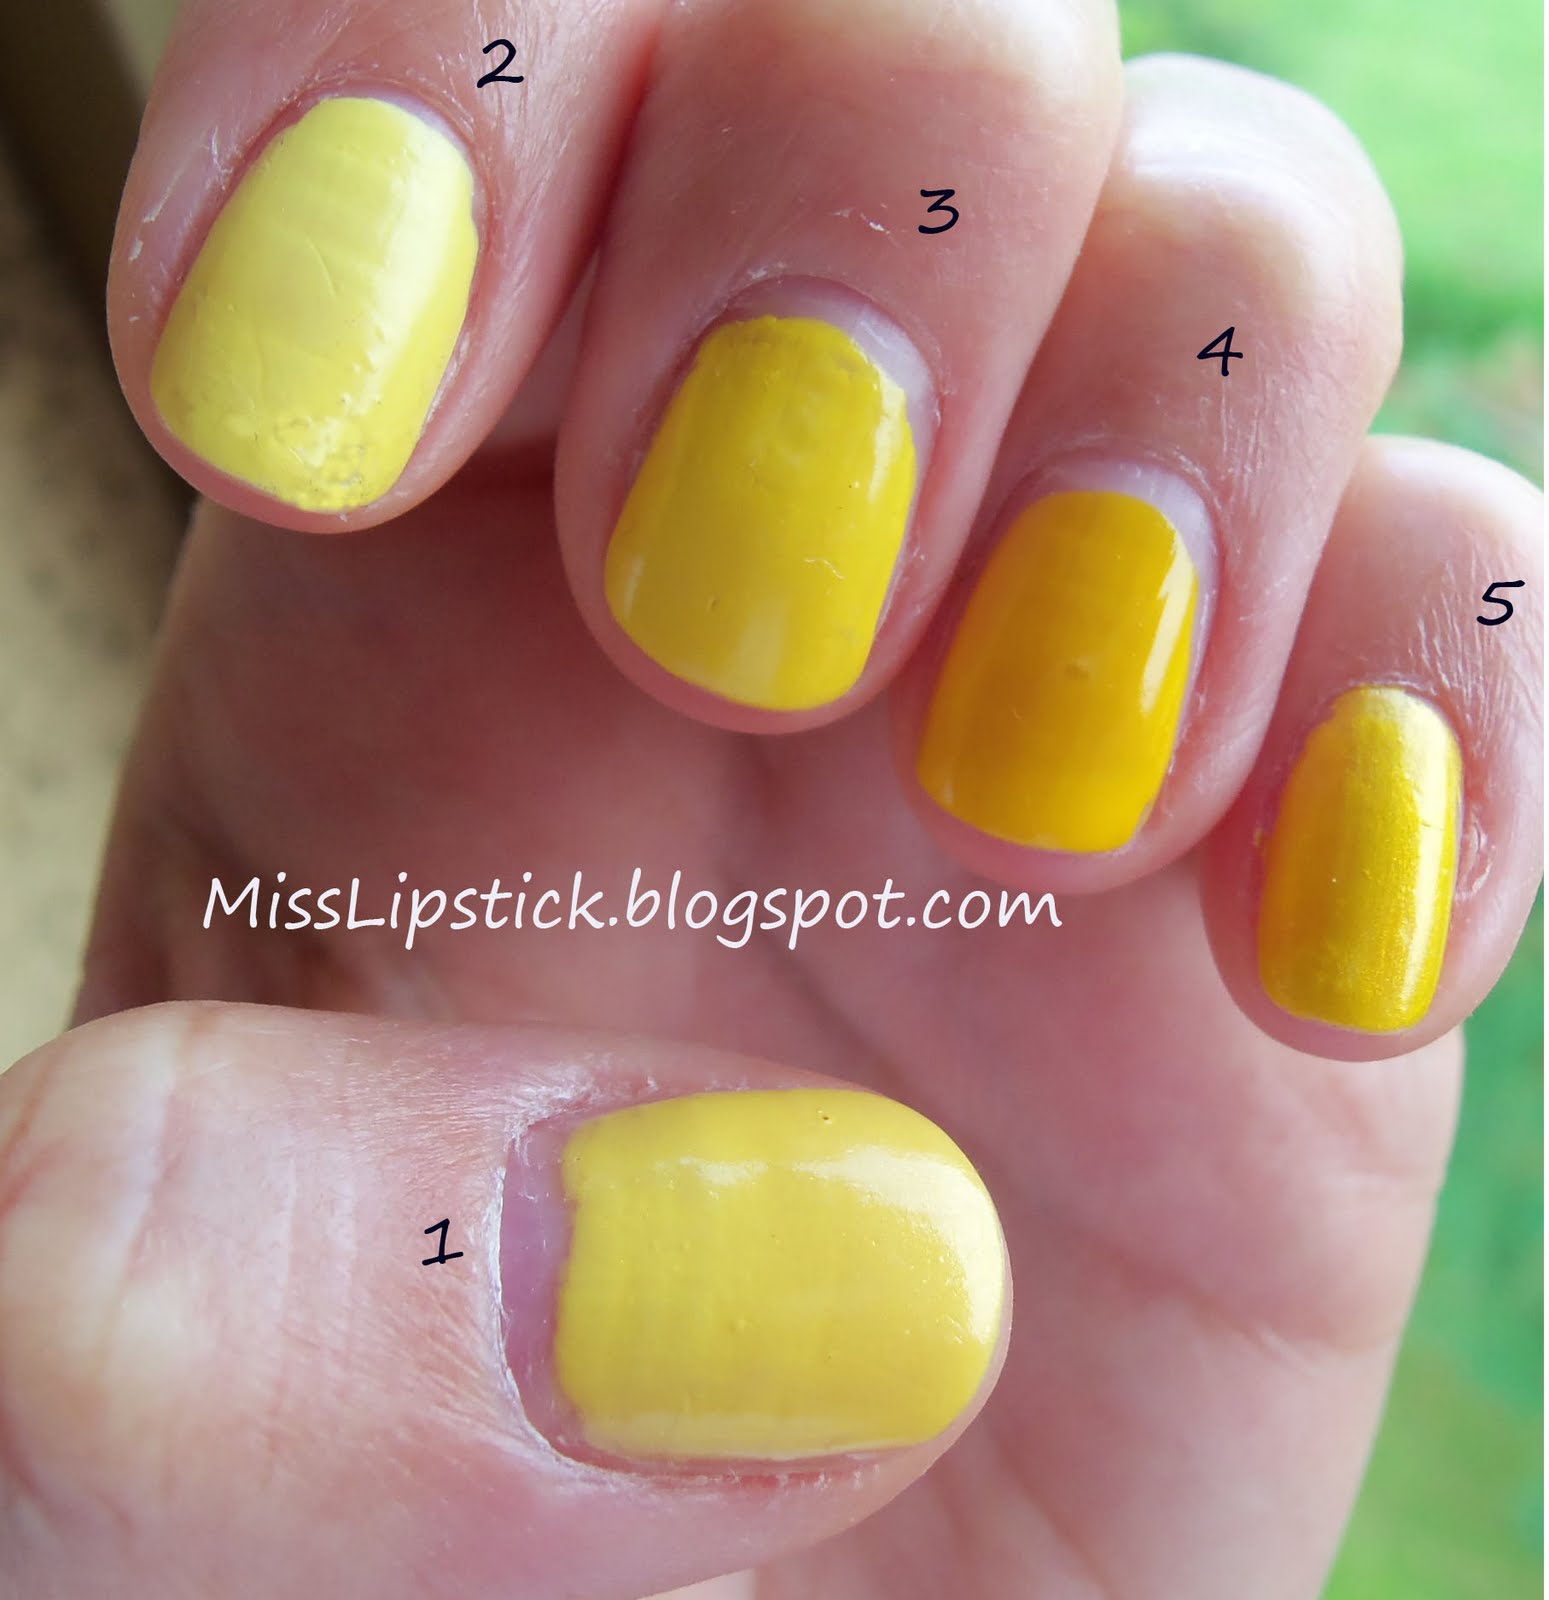 MissLipstick: Yellow Is The New Black